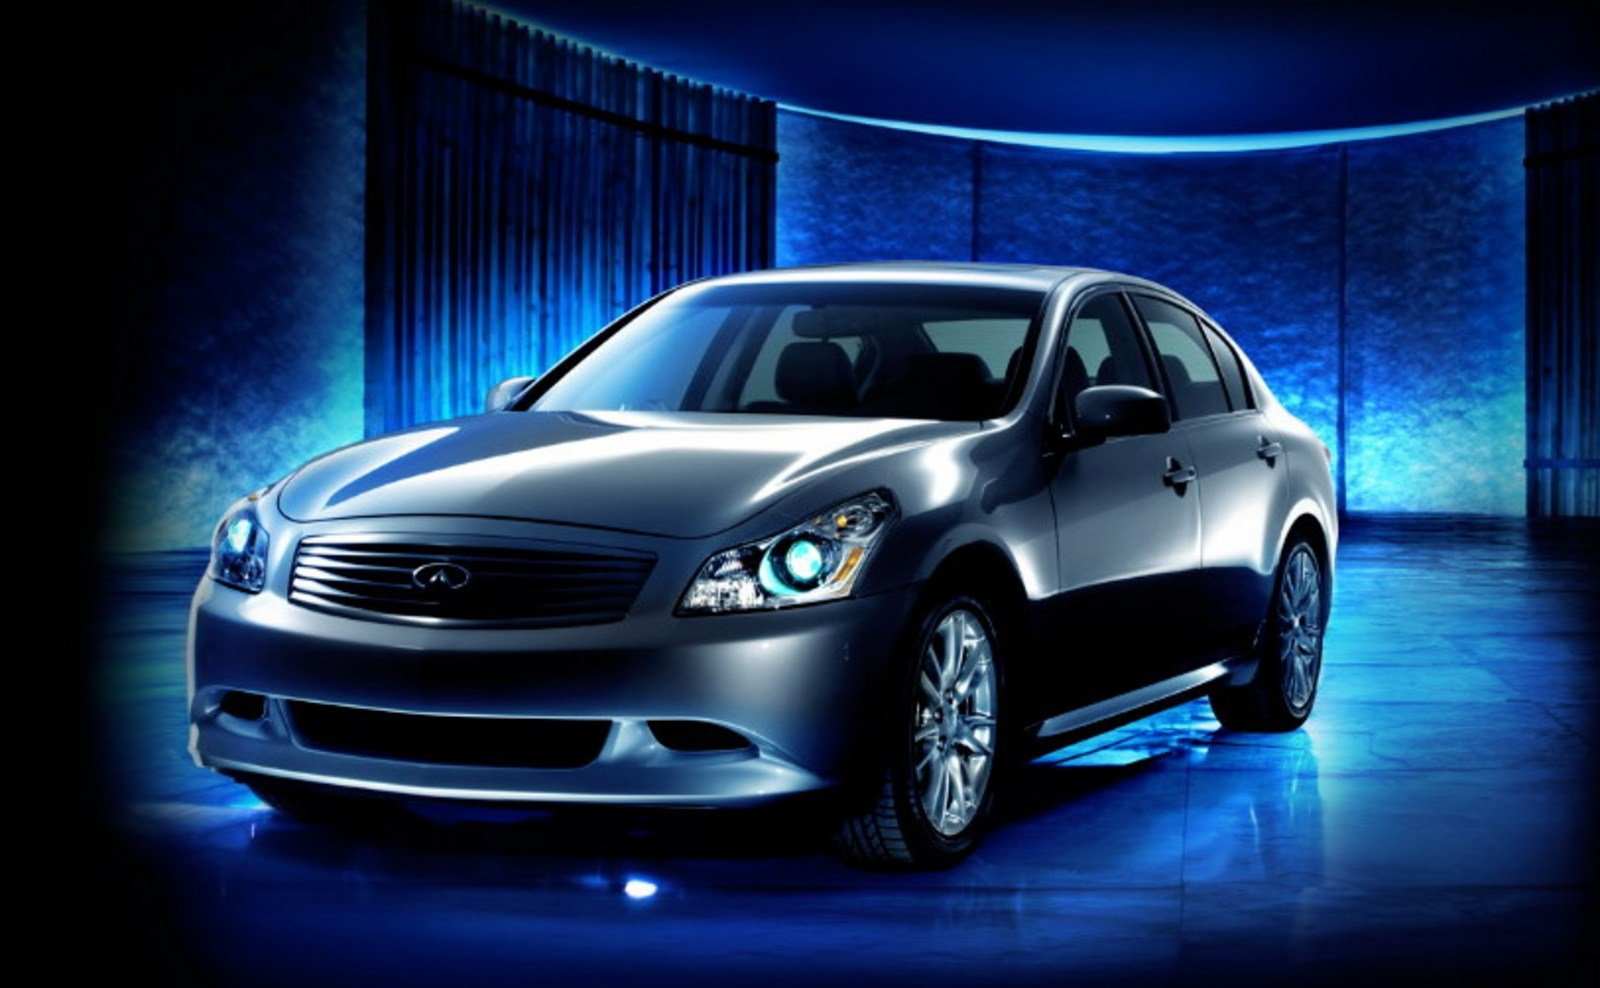 2008 infiniti g35 sedan pricing announced news gallery. Black Bedroom Furniture Sets. Home Design Ideas